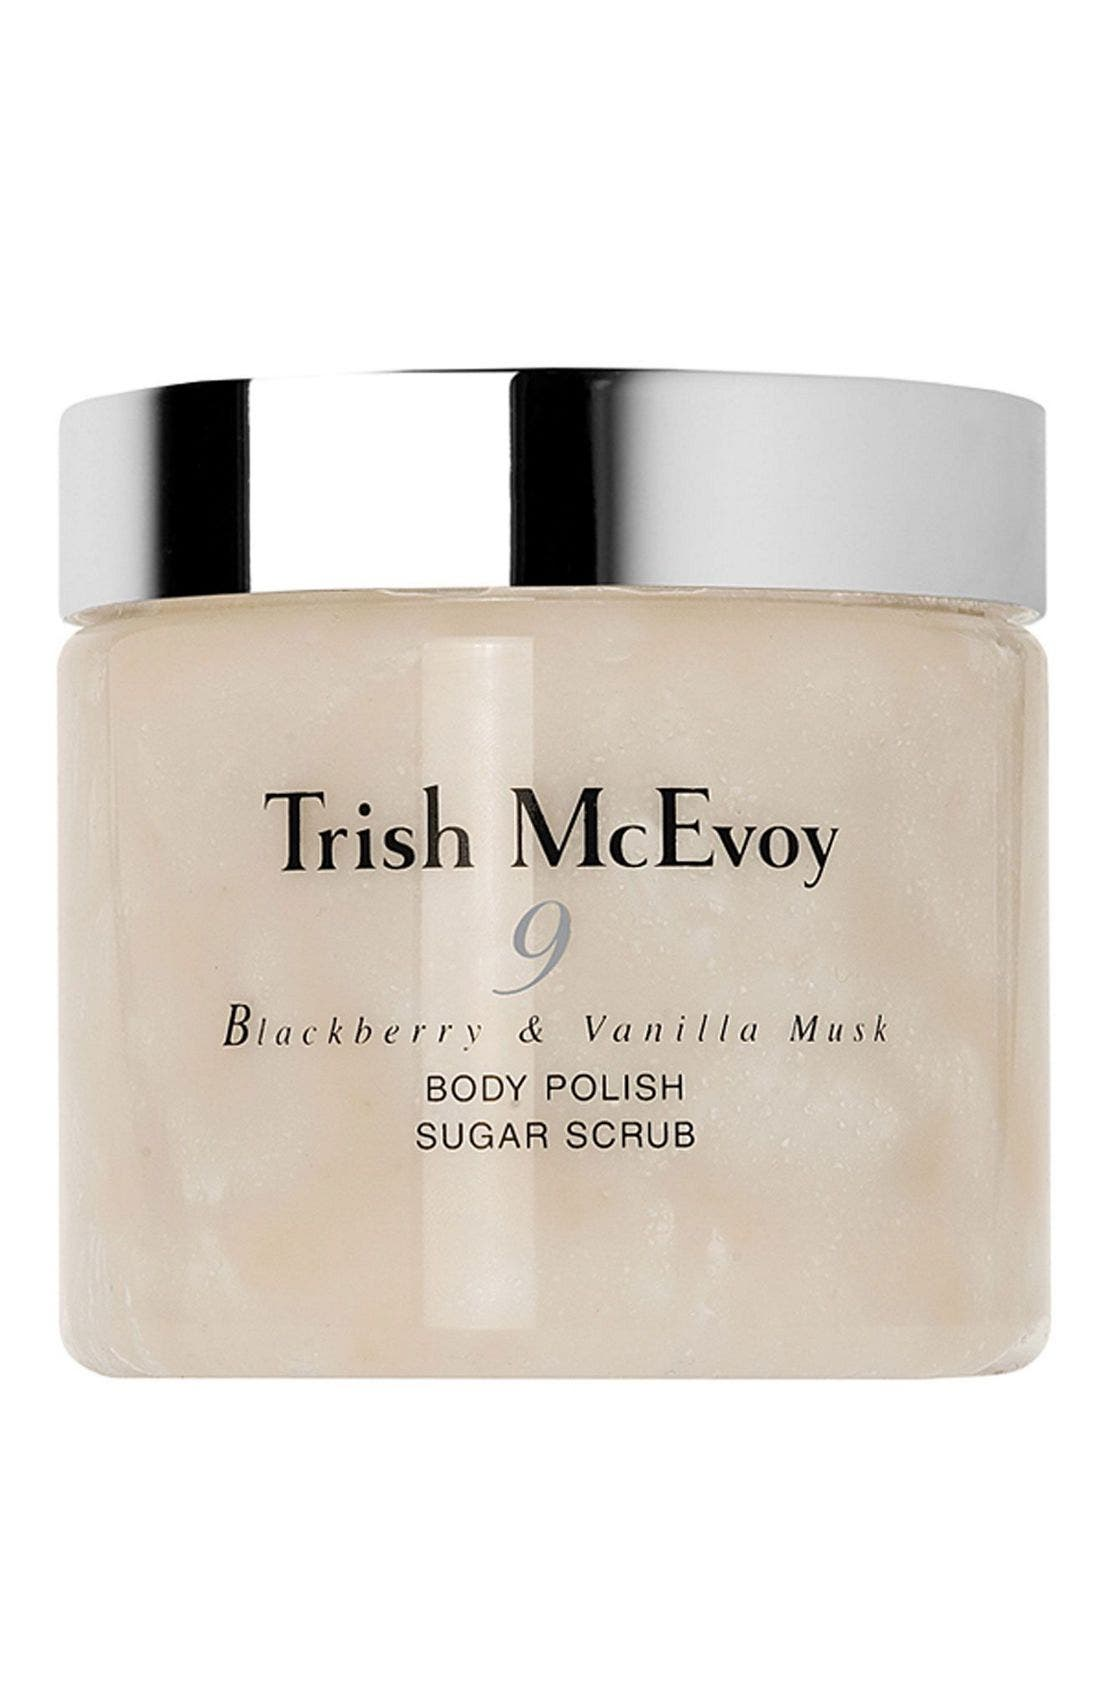 Trish McEvoy 'No. 9 Blackberry & Vanilla Musk' Body Polish Sugar Scrub